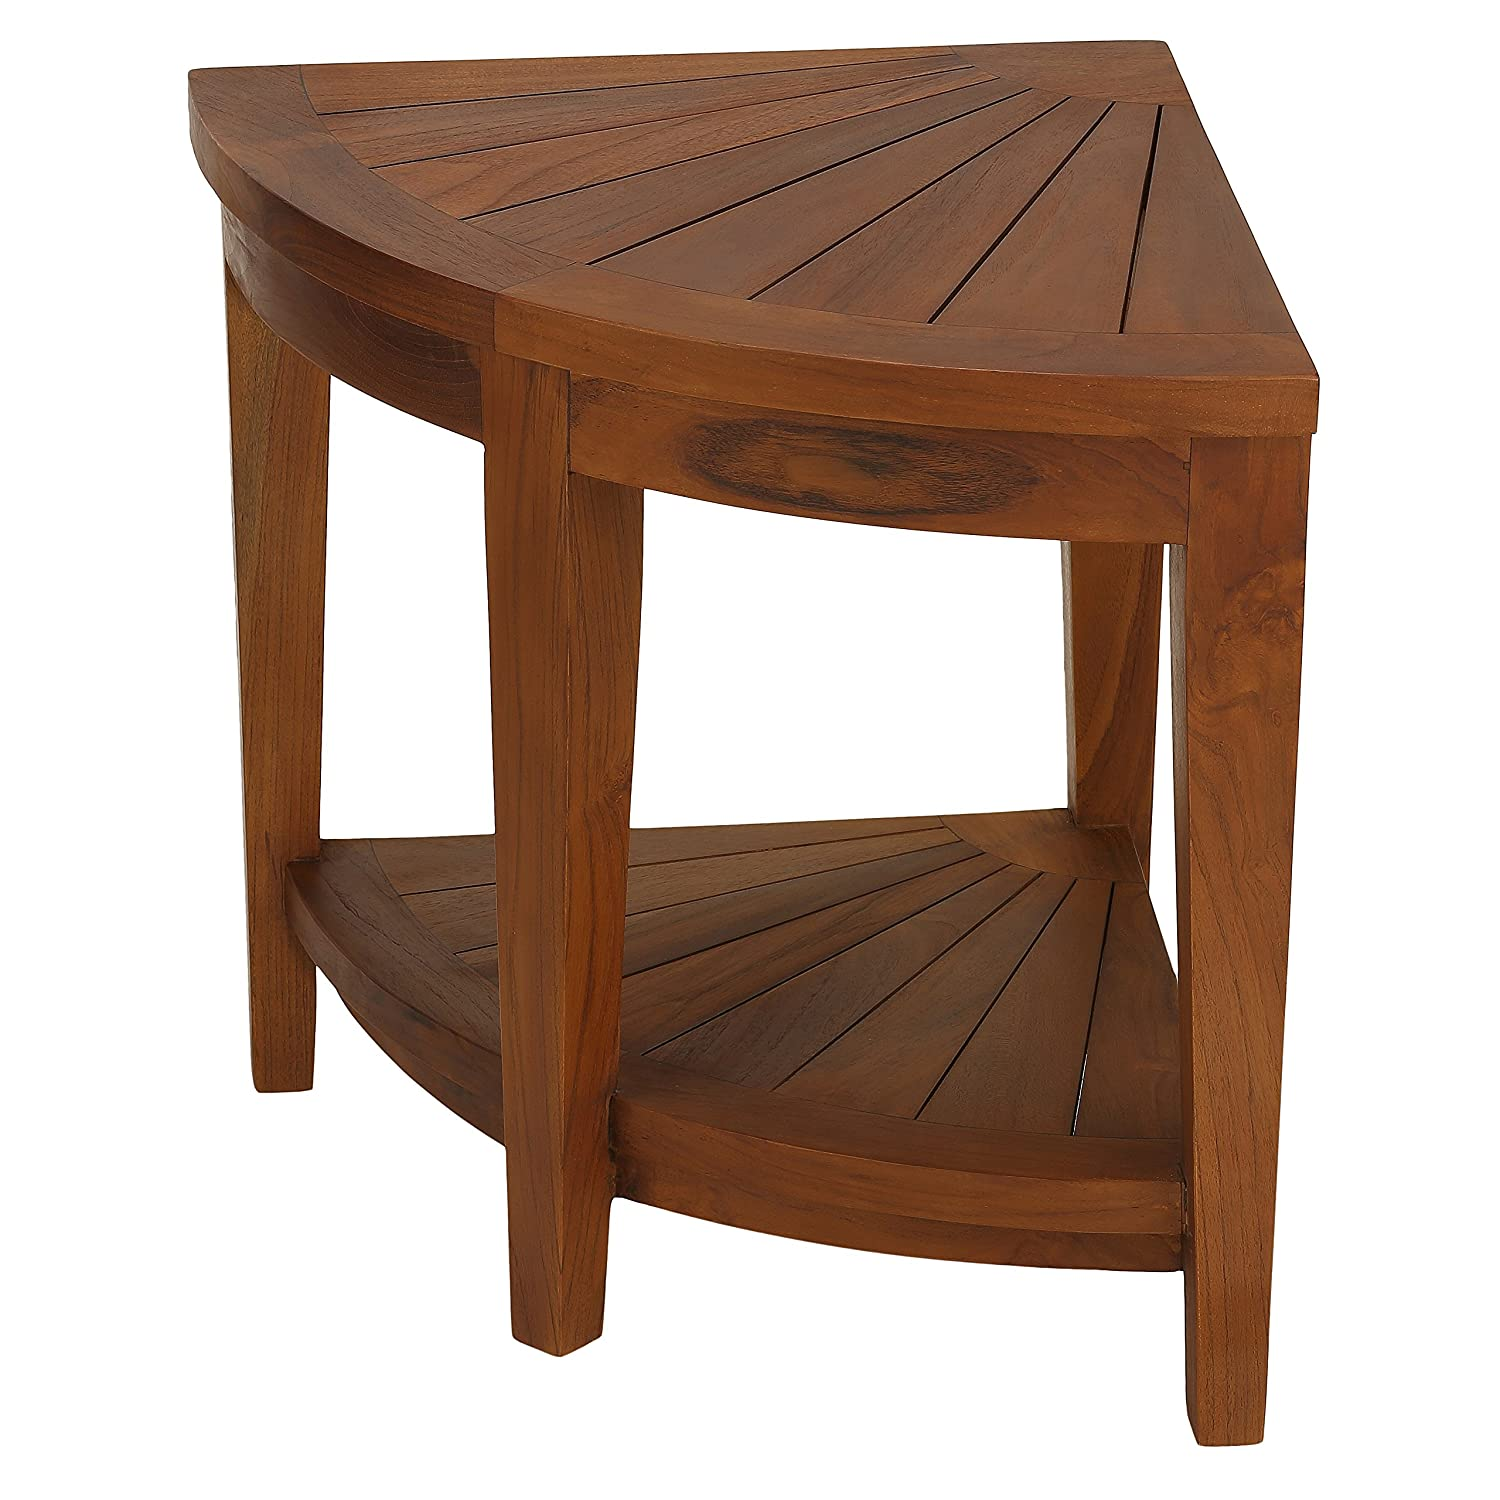 Amazon.com Bare Decor Hanna Corner Spa Stool in Solid Teak Wood Corner Teak Oil Home u0026 Kitchen  sc 1 st  Amazon.com & Amazon.com: Bare Decor Hanna Corner Spa Stool in Solid Teak Wood ... islam-shia.org